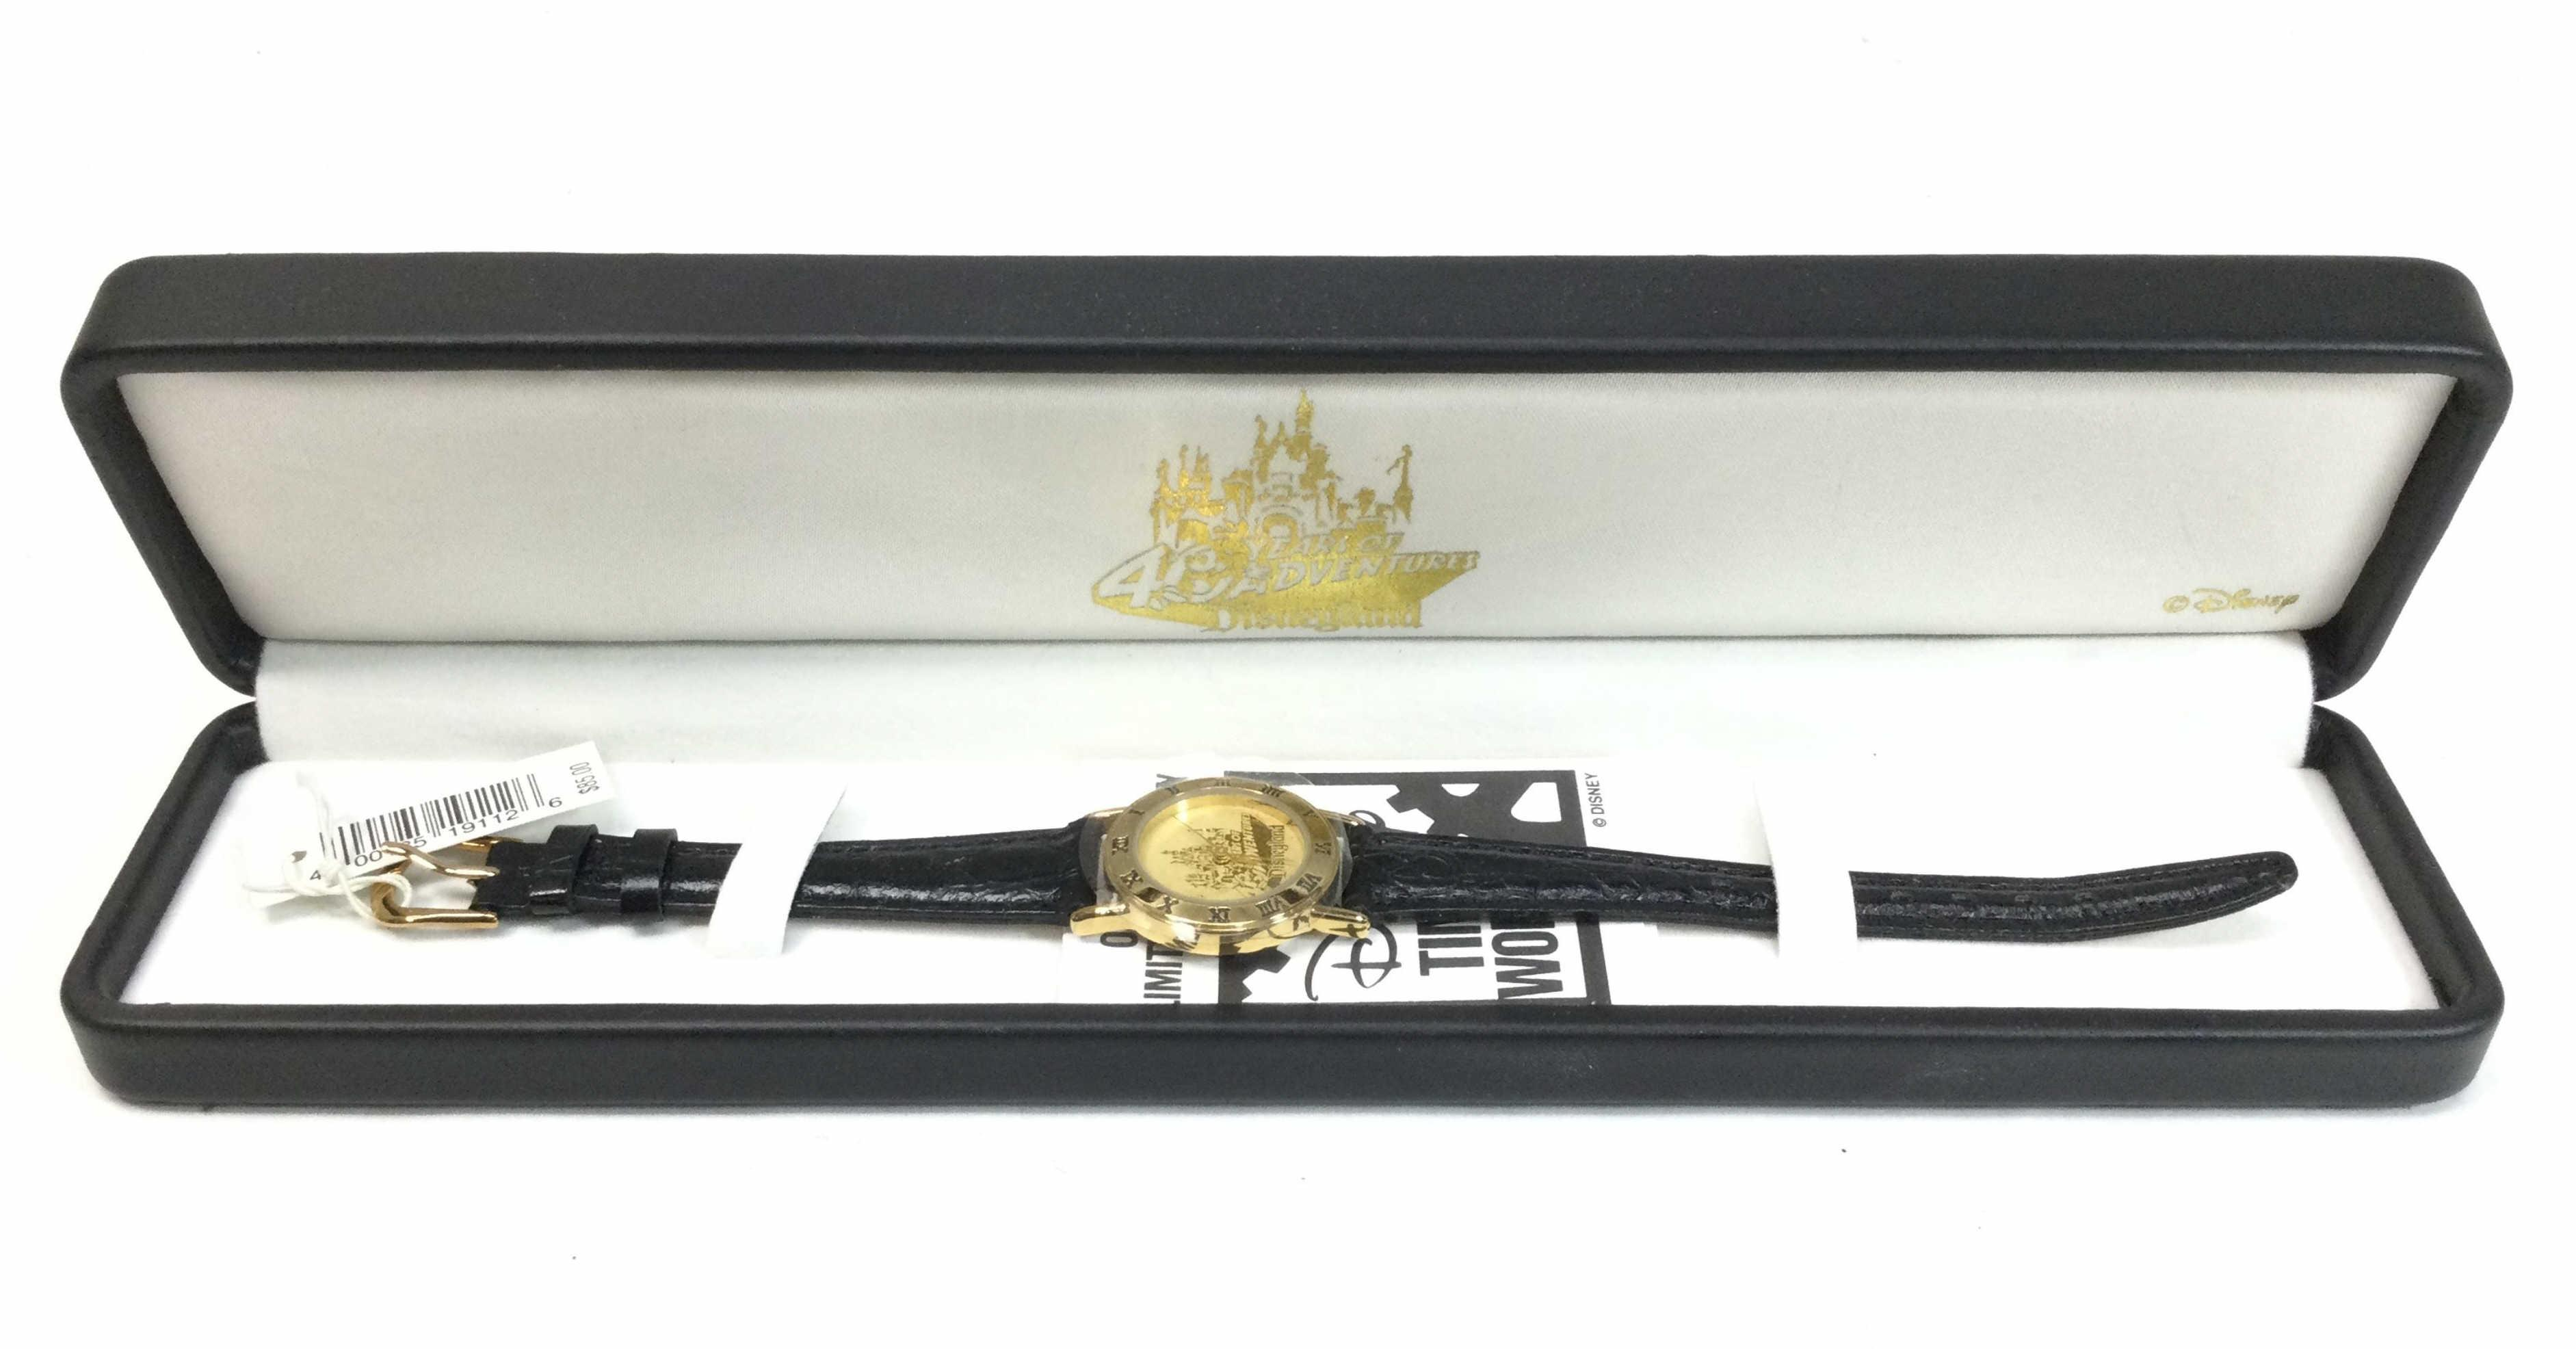 Vintage Disney 40th Anniversary Watch